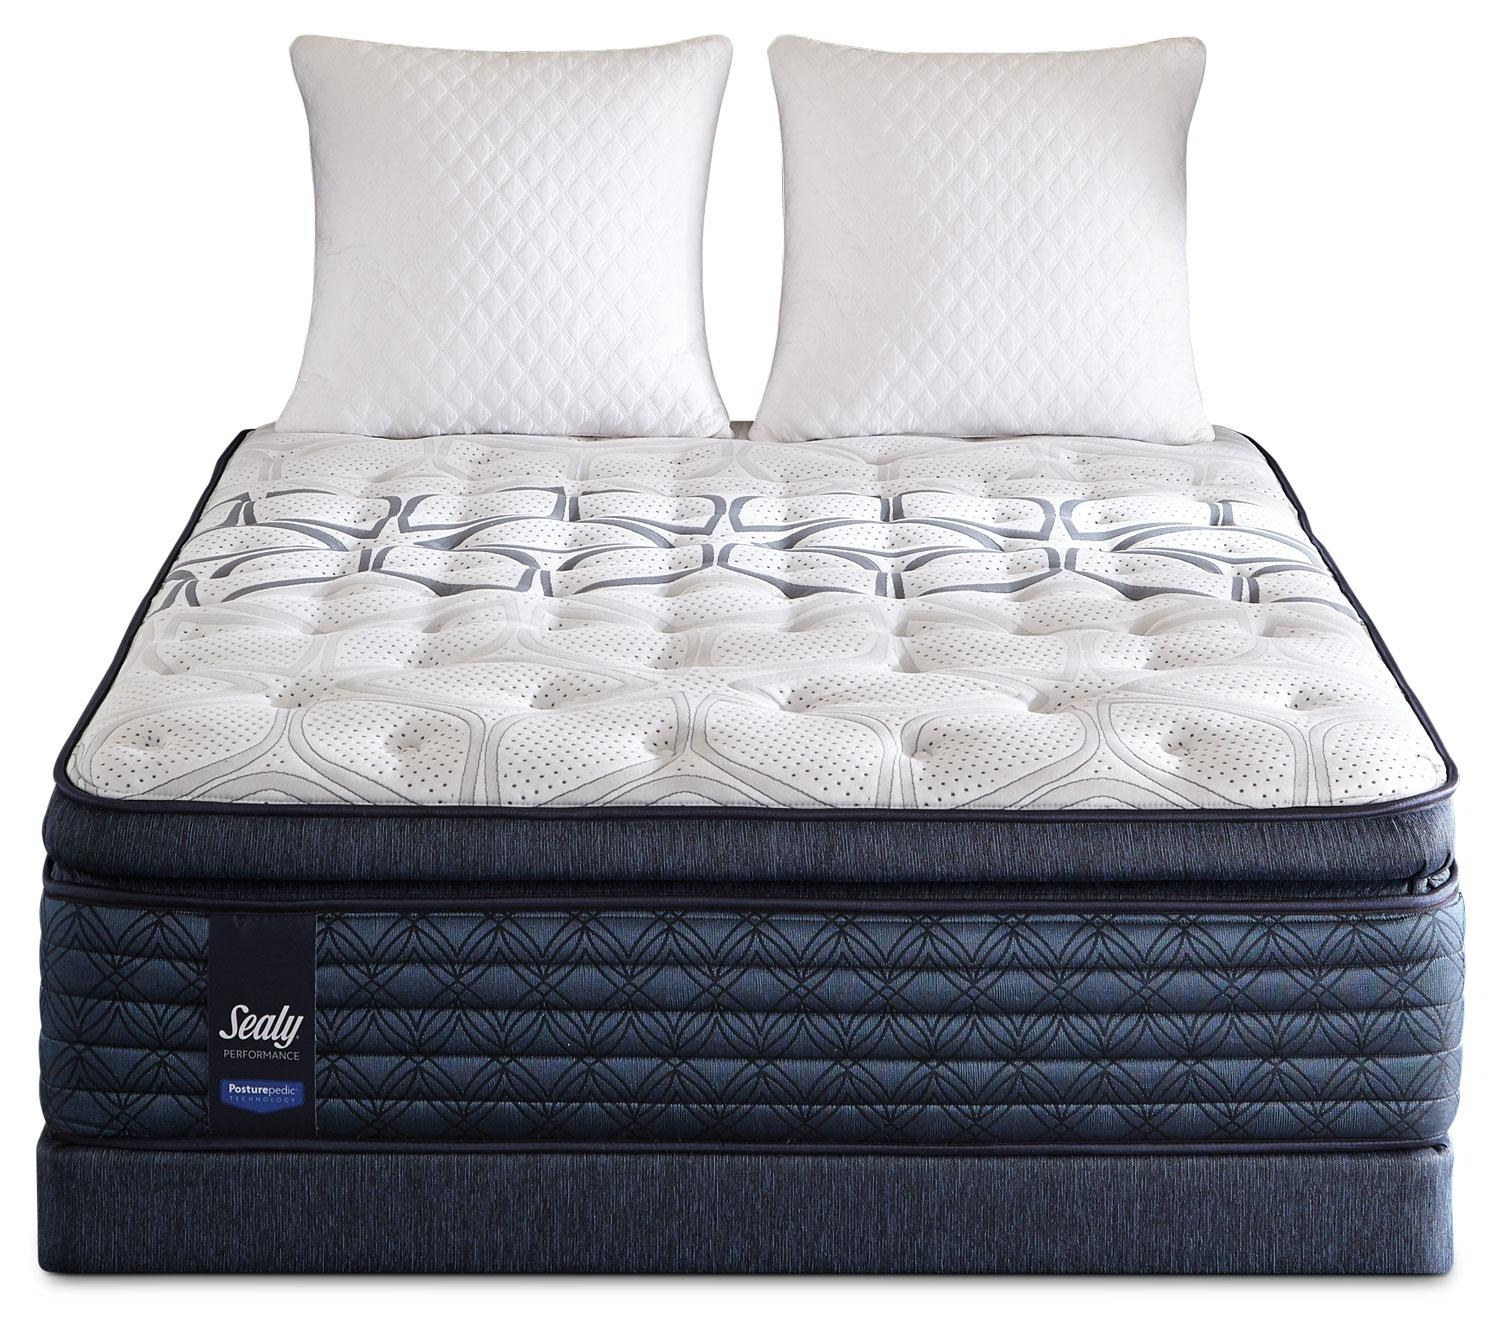 Queen Sets | The Brick in Queen Mattress Sets